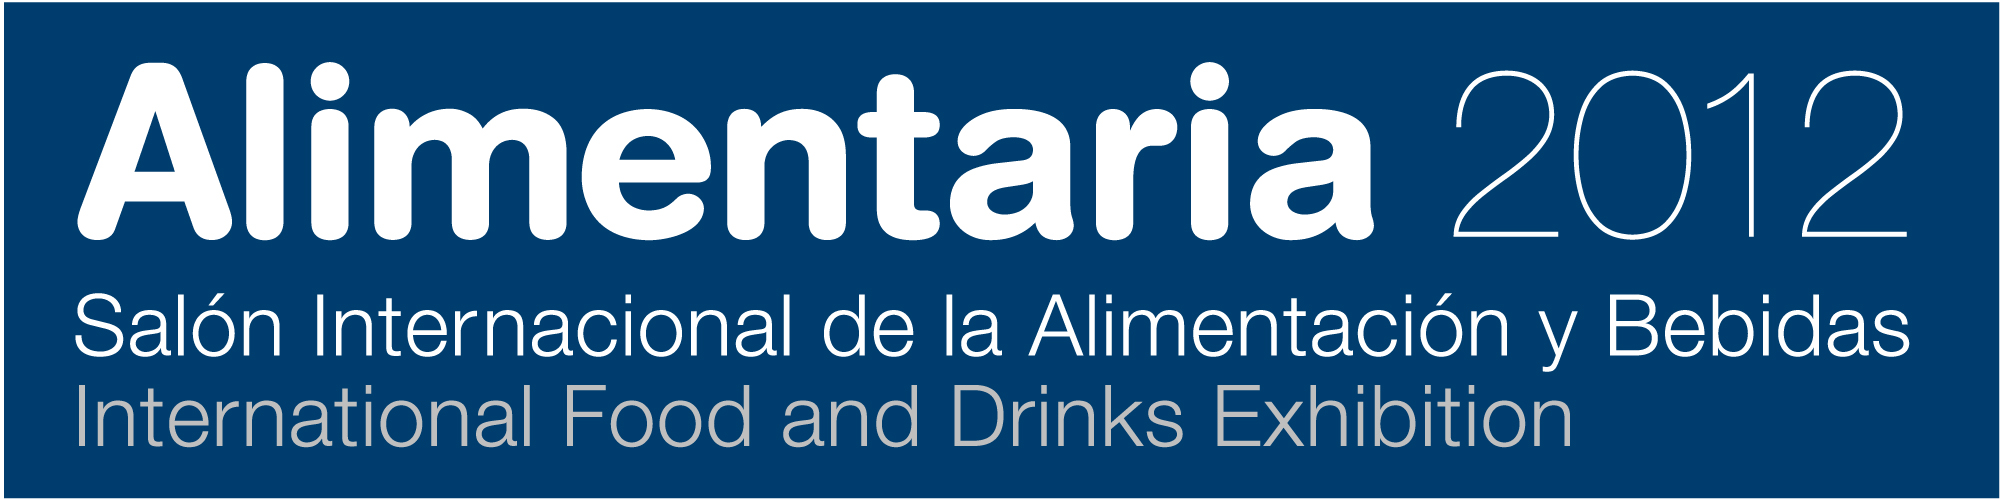 Alimentaria 2012 - International Food and Drinks Exhibition